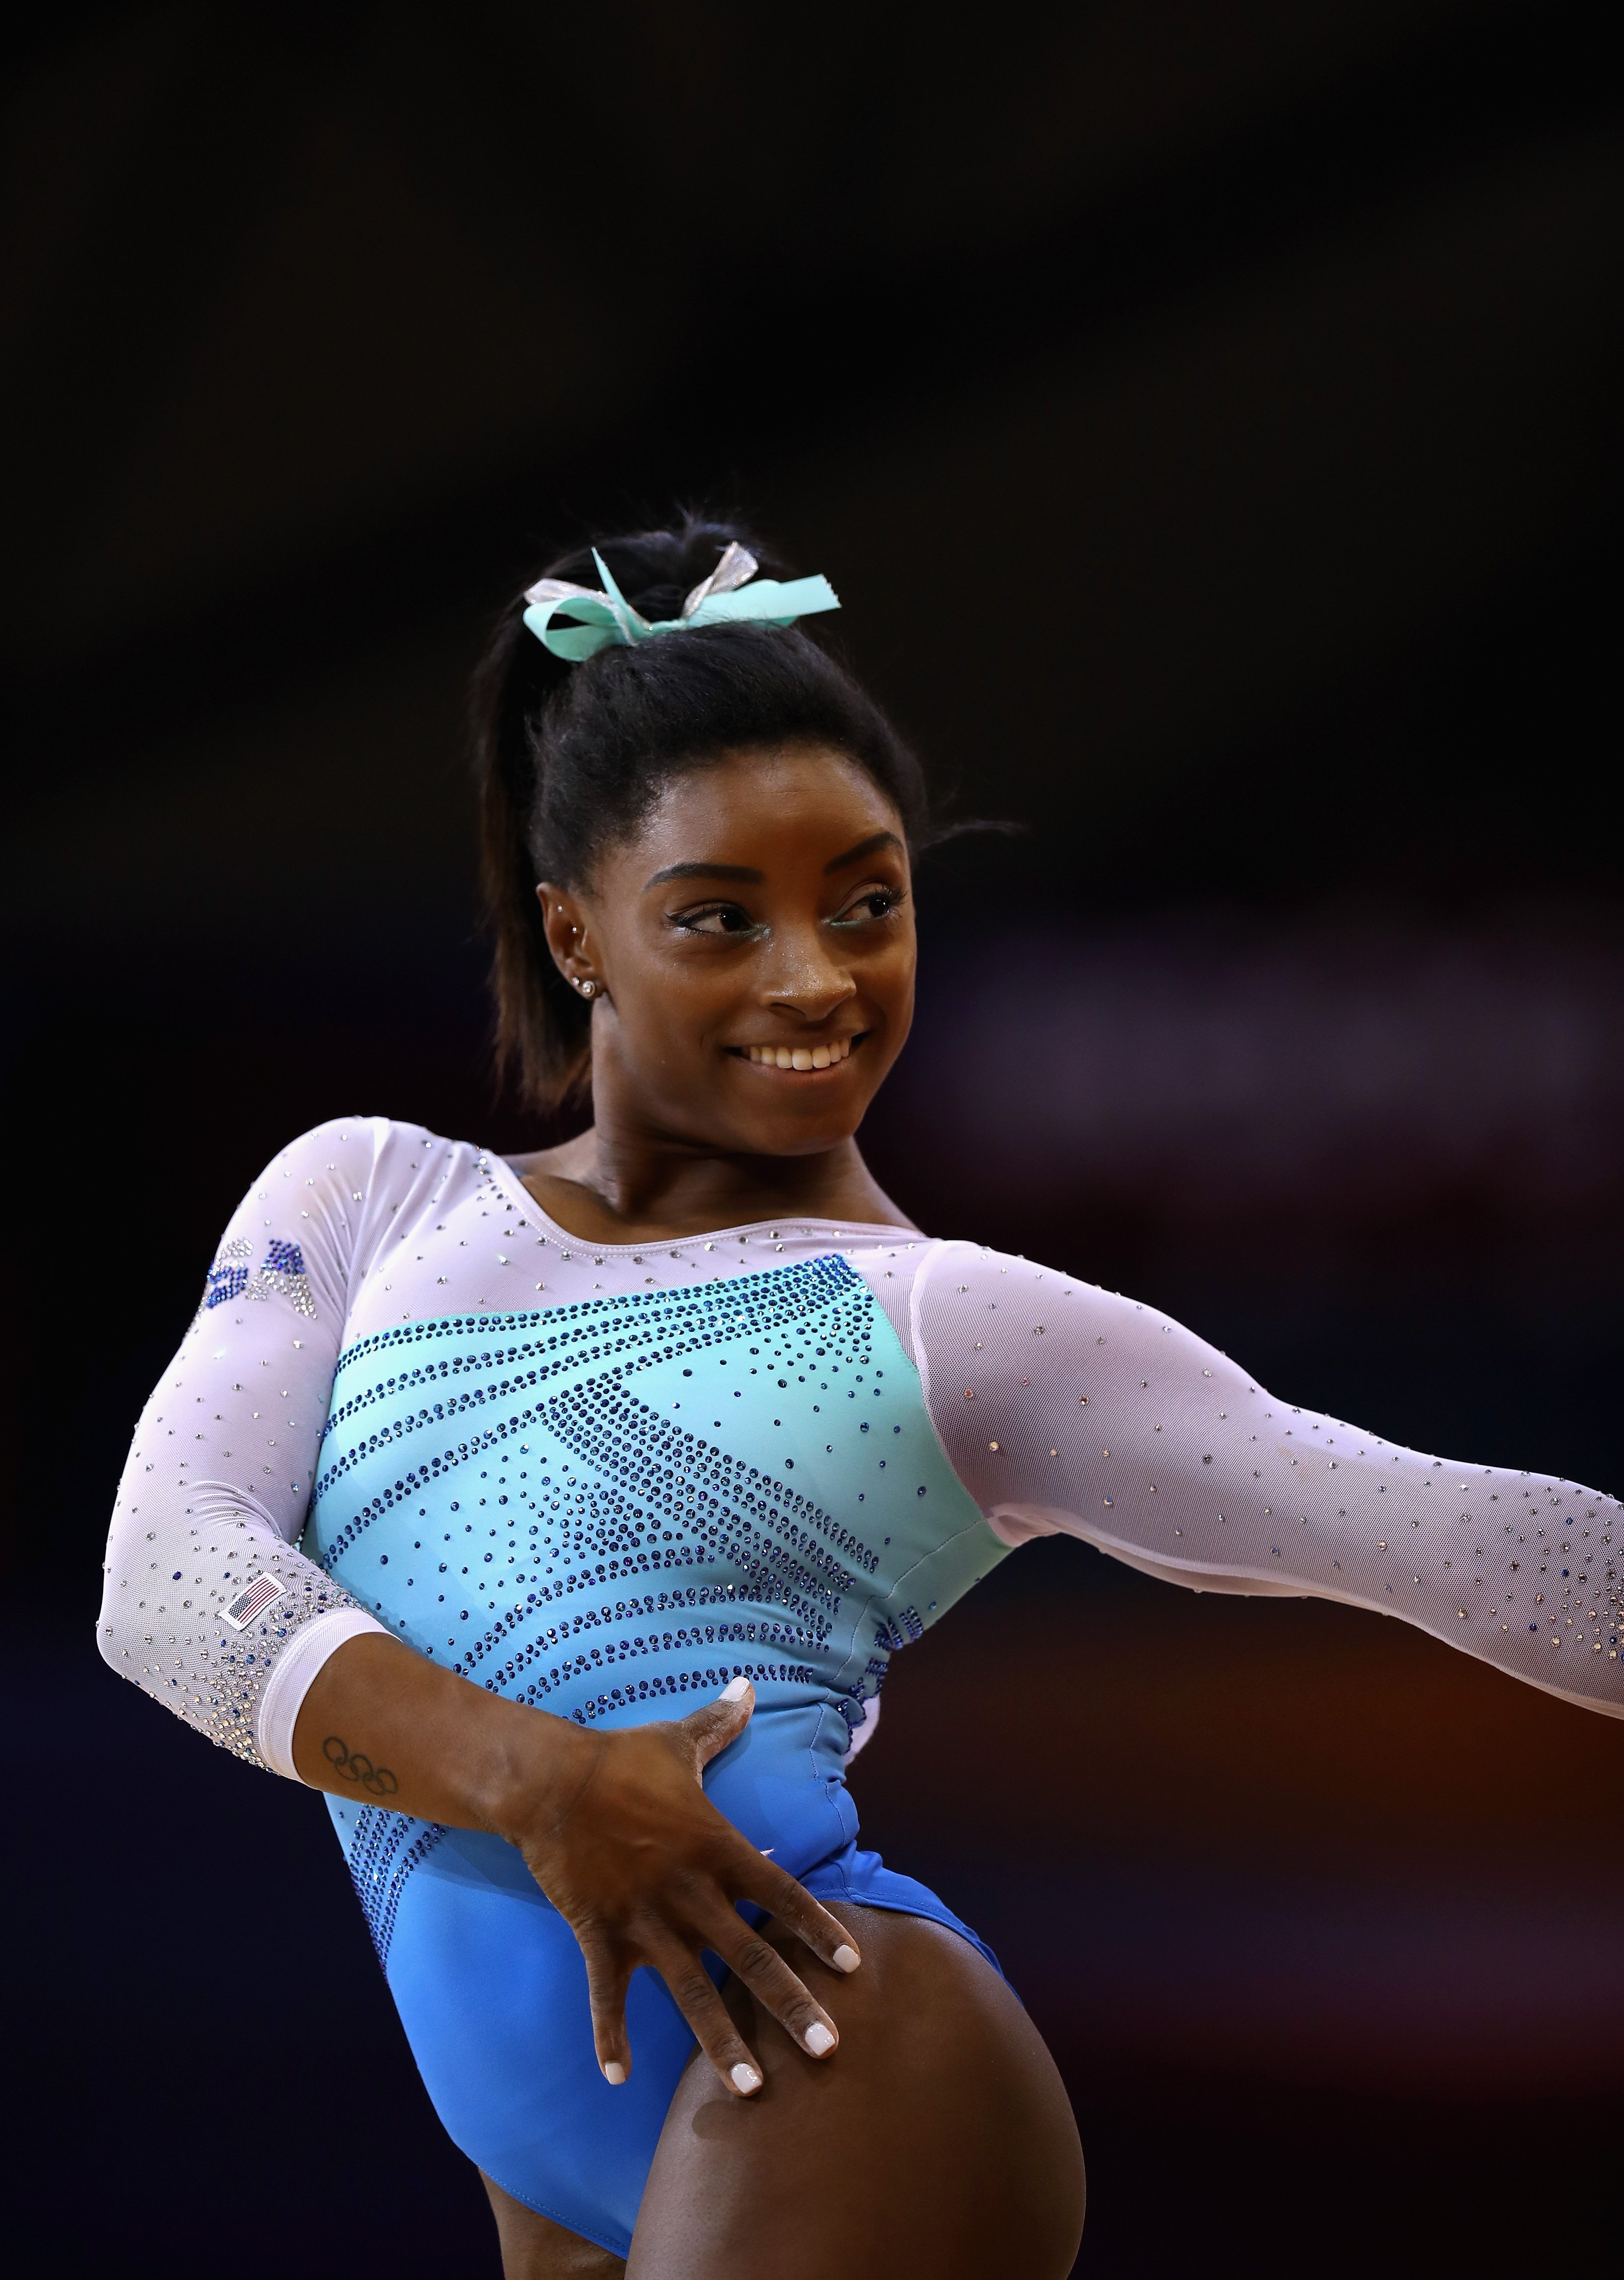 Simone Biles representing the US at the 2018 FIG Artistic Gymnastics Championships in Qatar on November 1, 2018. | Photo: Getty Images